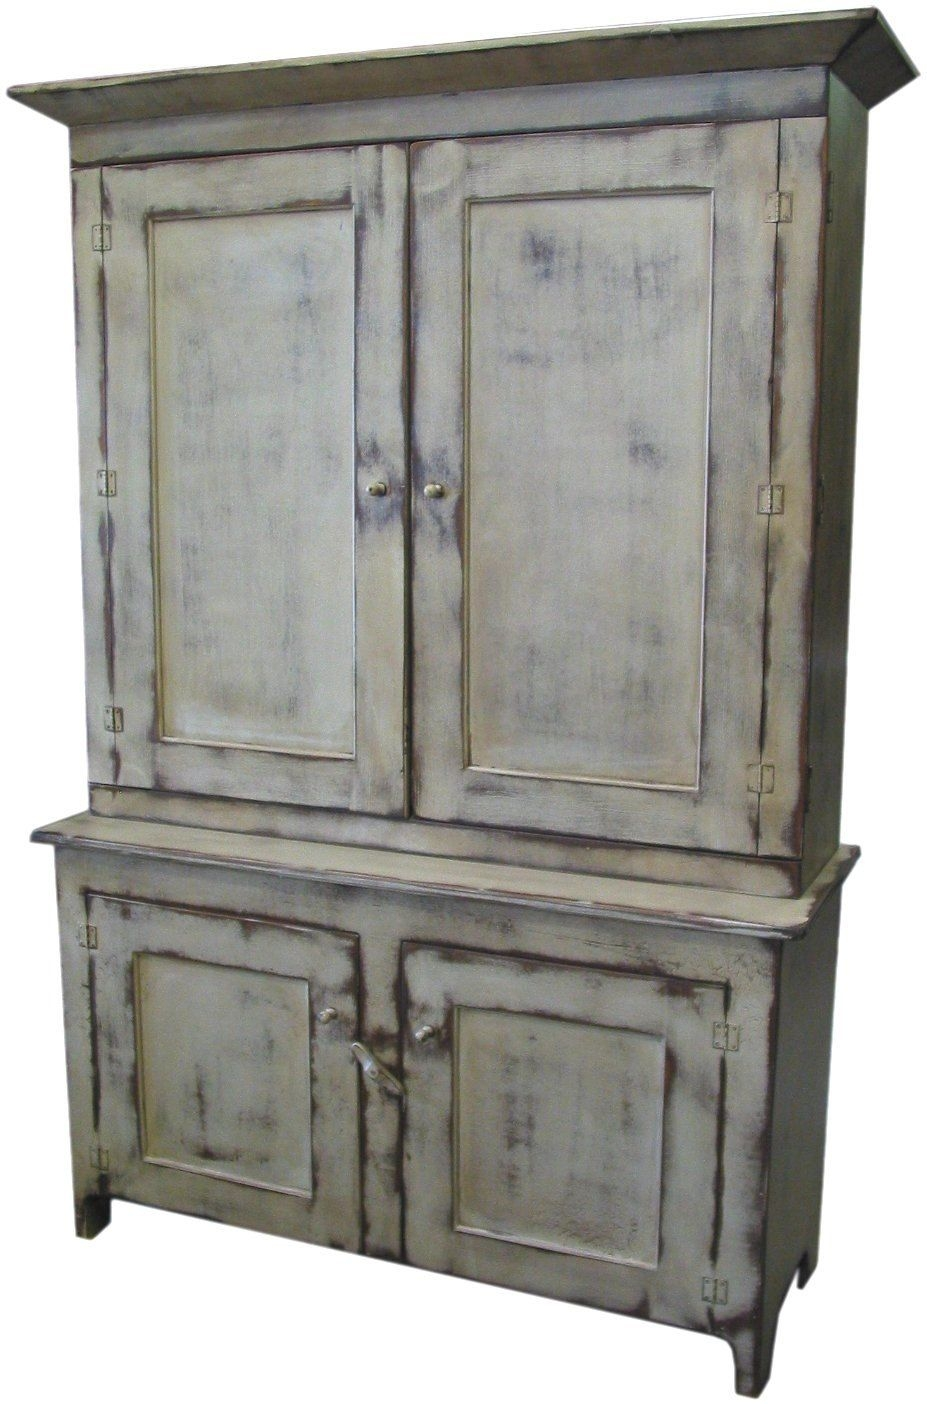 Charmant Shabby Chic Tv Cabinet White On Java